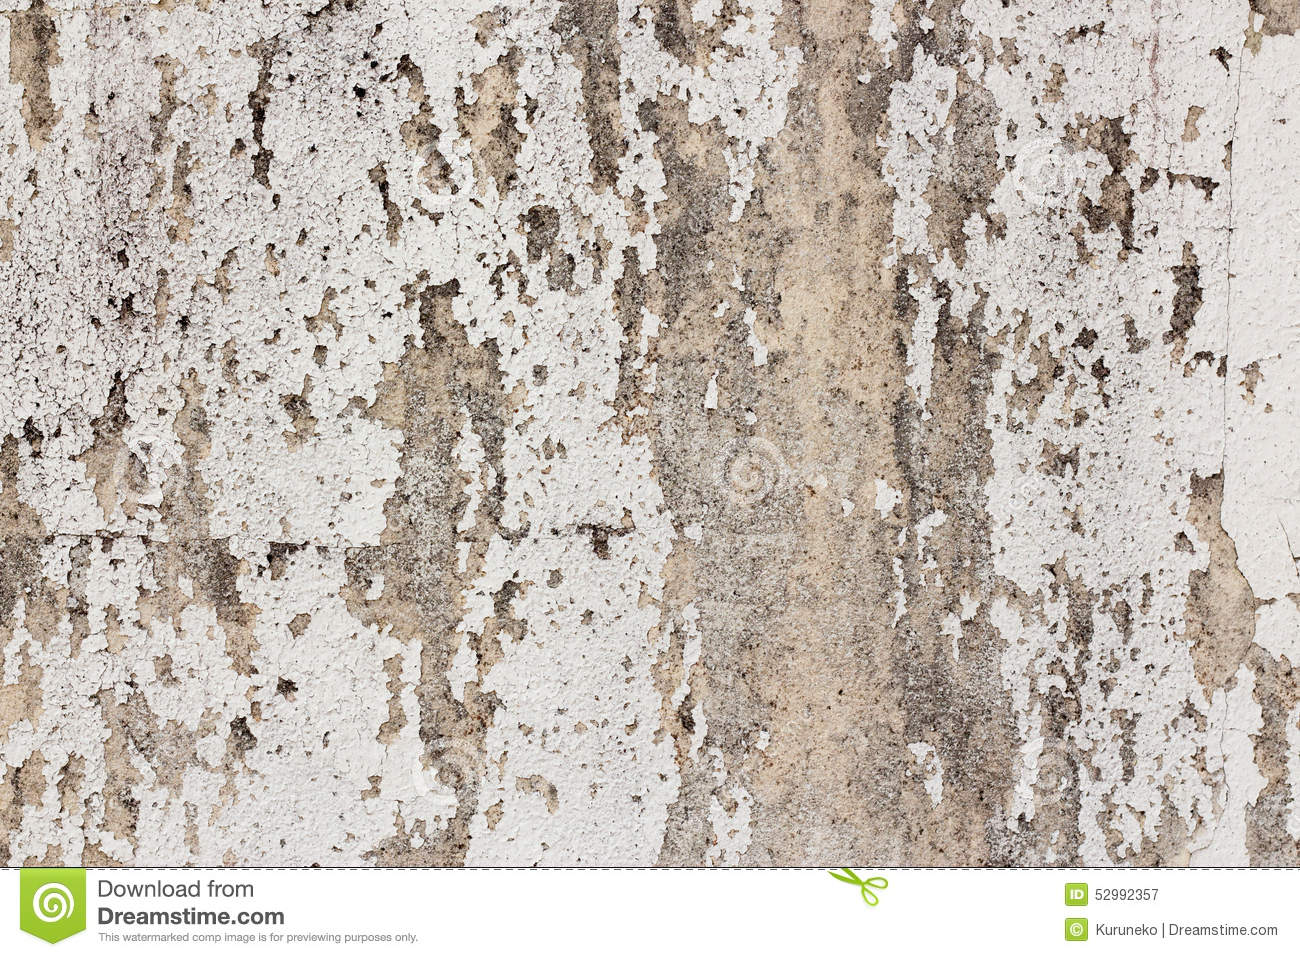 Old white painted concrete wall background stock image for Getting stains off concrete